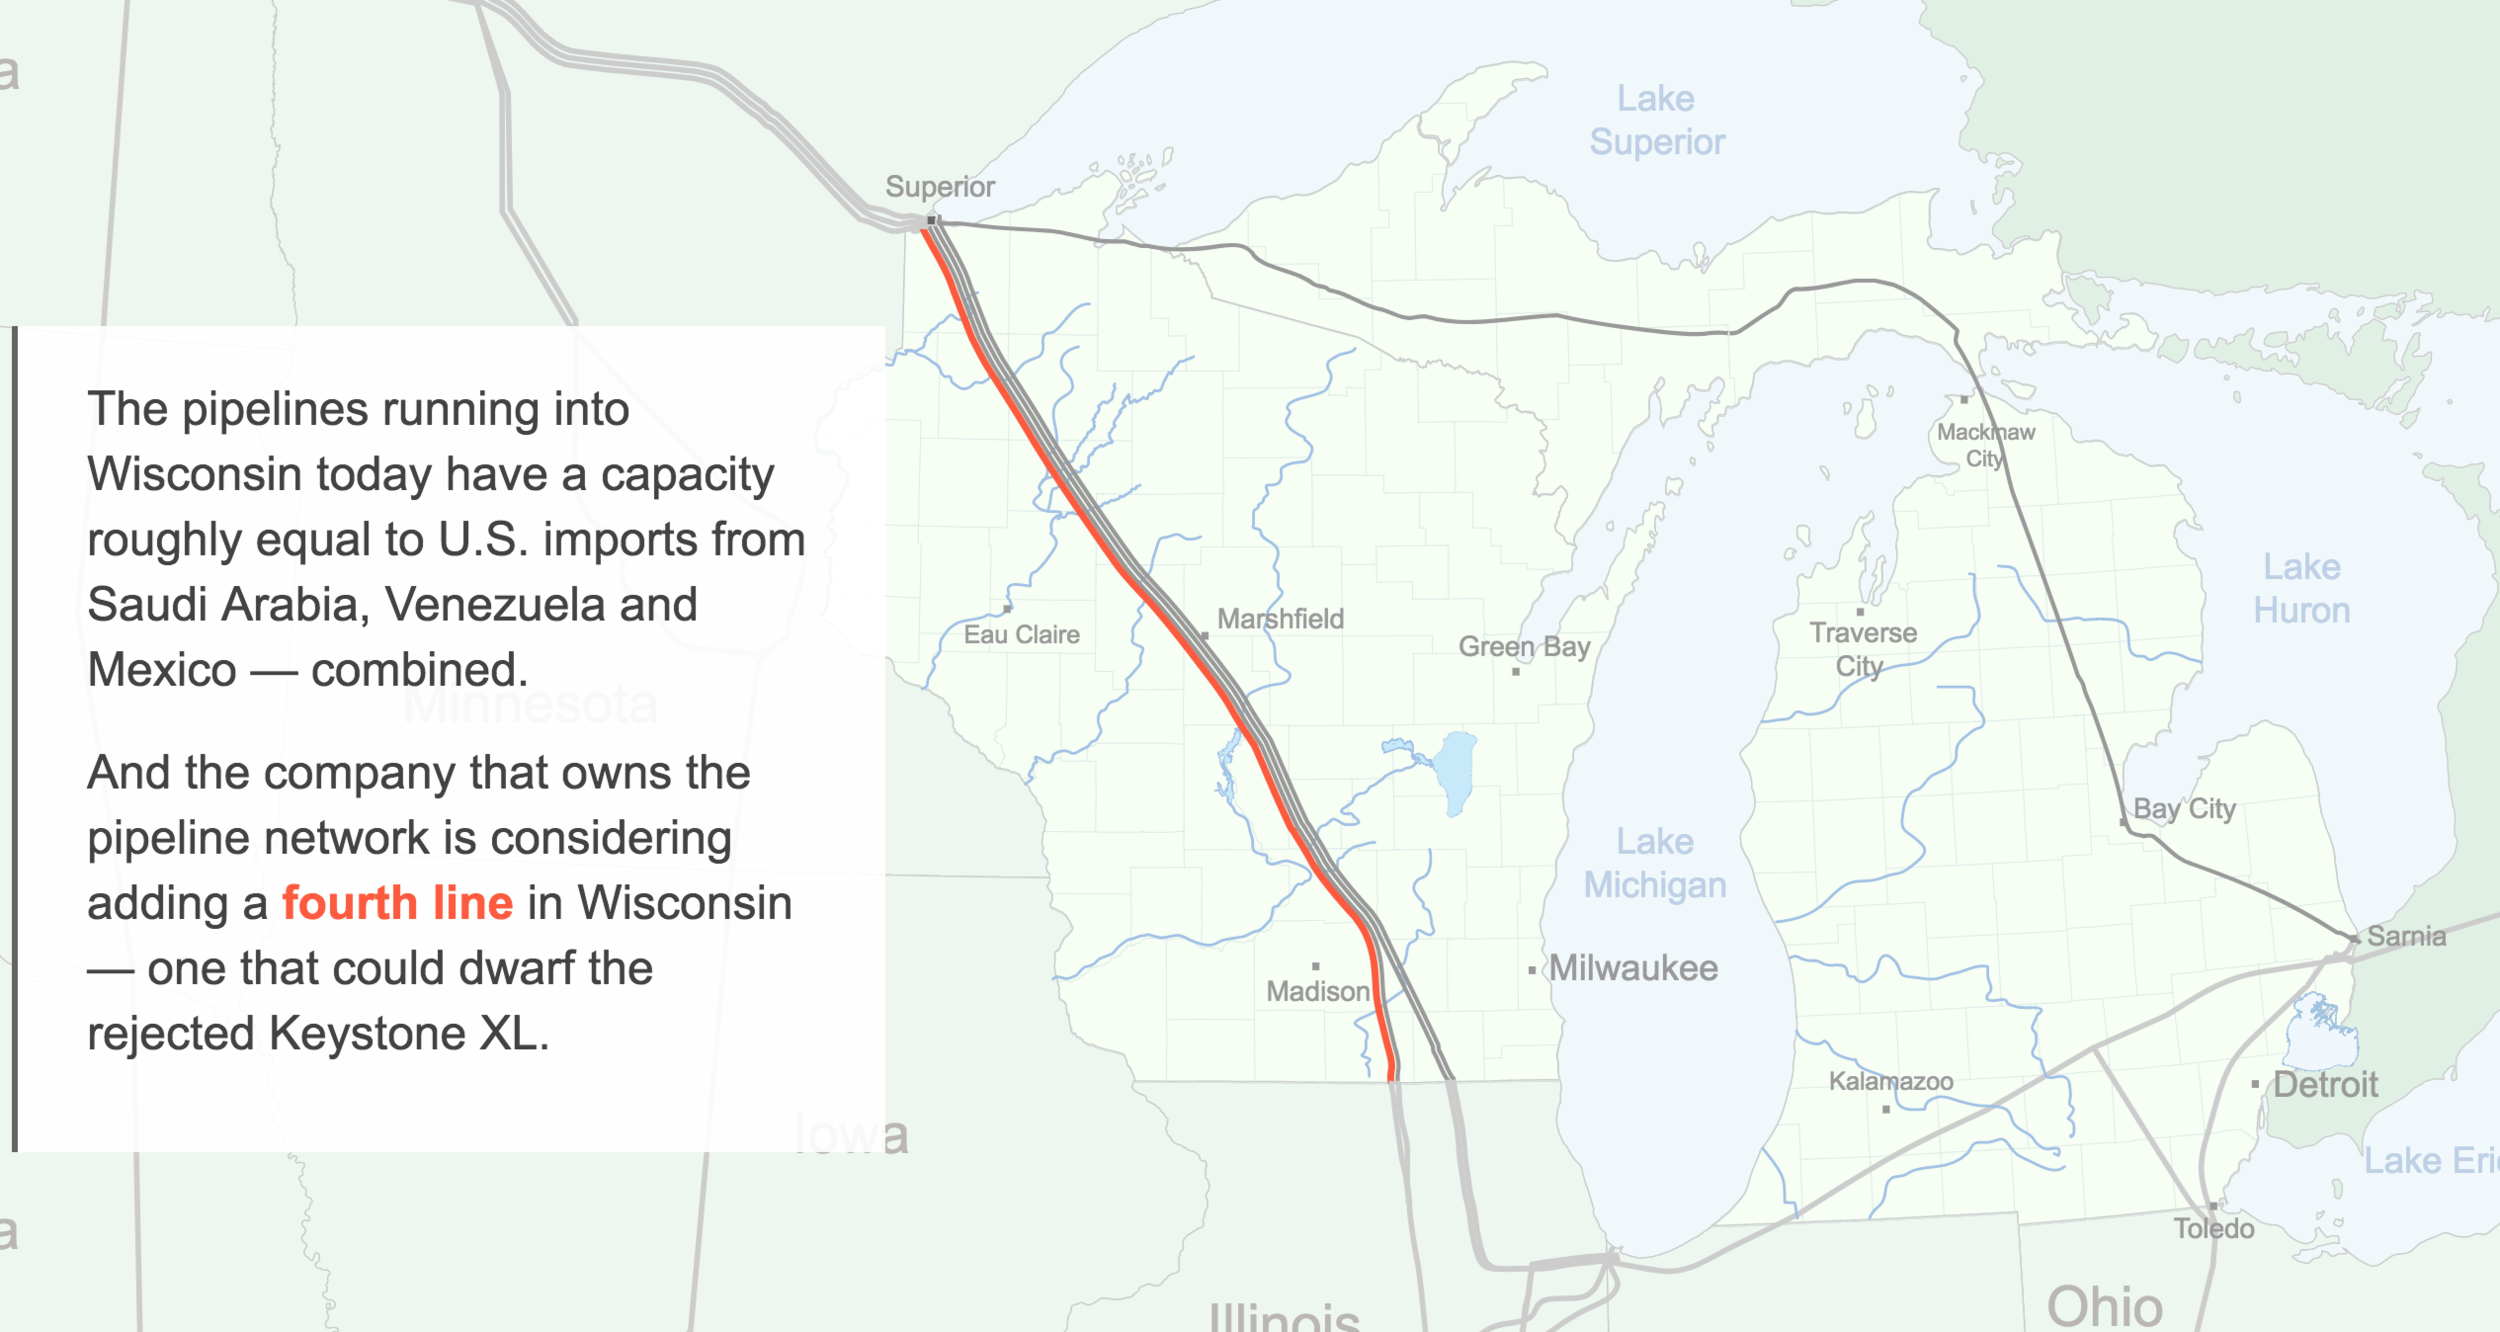 Oil and Water - A look at the two 64-year-old pipes at the bottom of the Straits of Mackinac, and what it could mean for Wisconsin if they are shut down.ROLE: Storyboarding and design of introduction graphic, front-end design for series